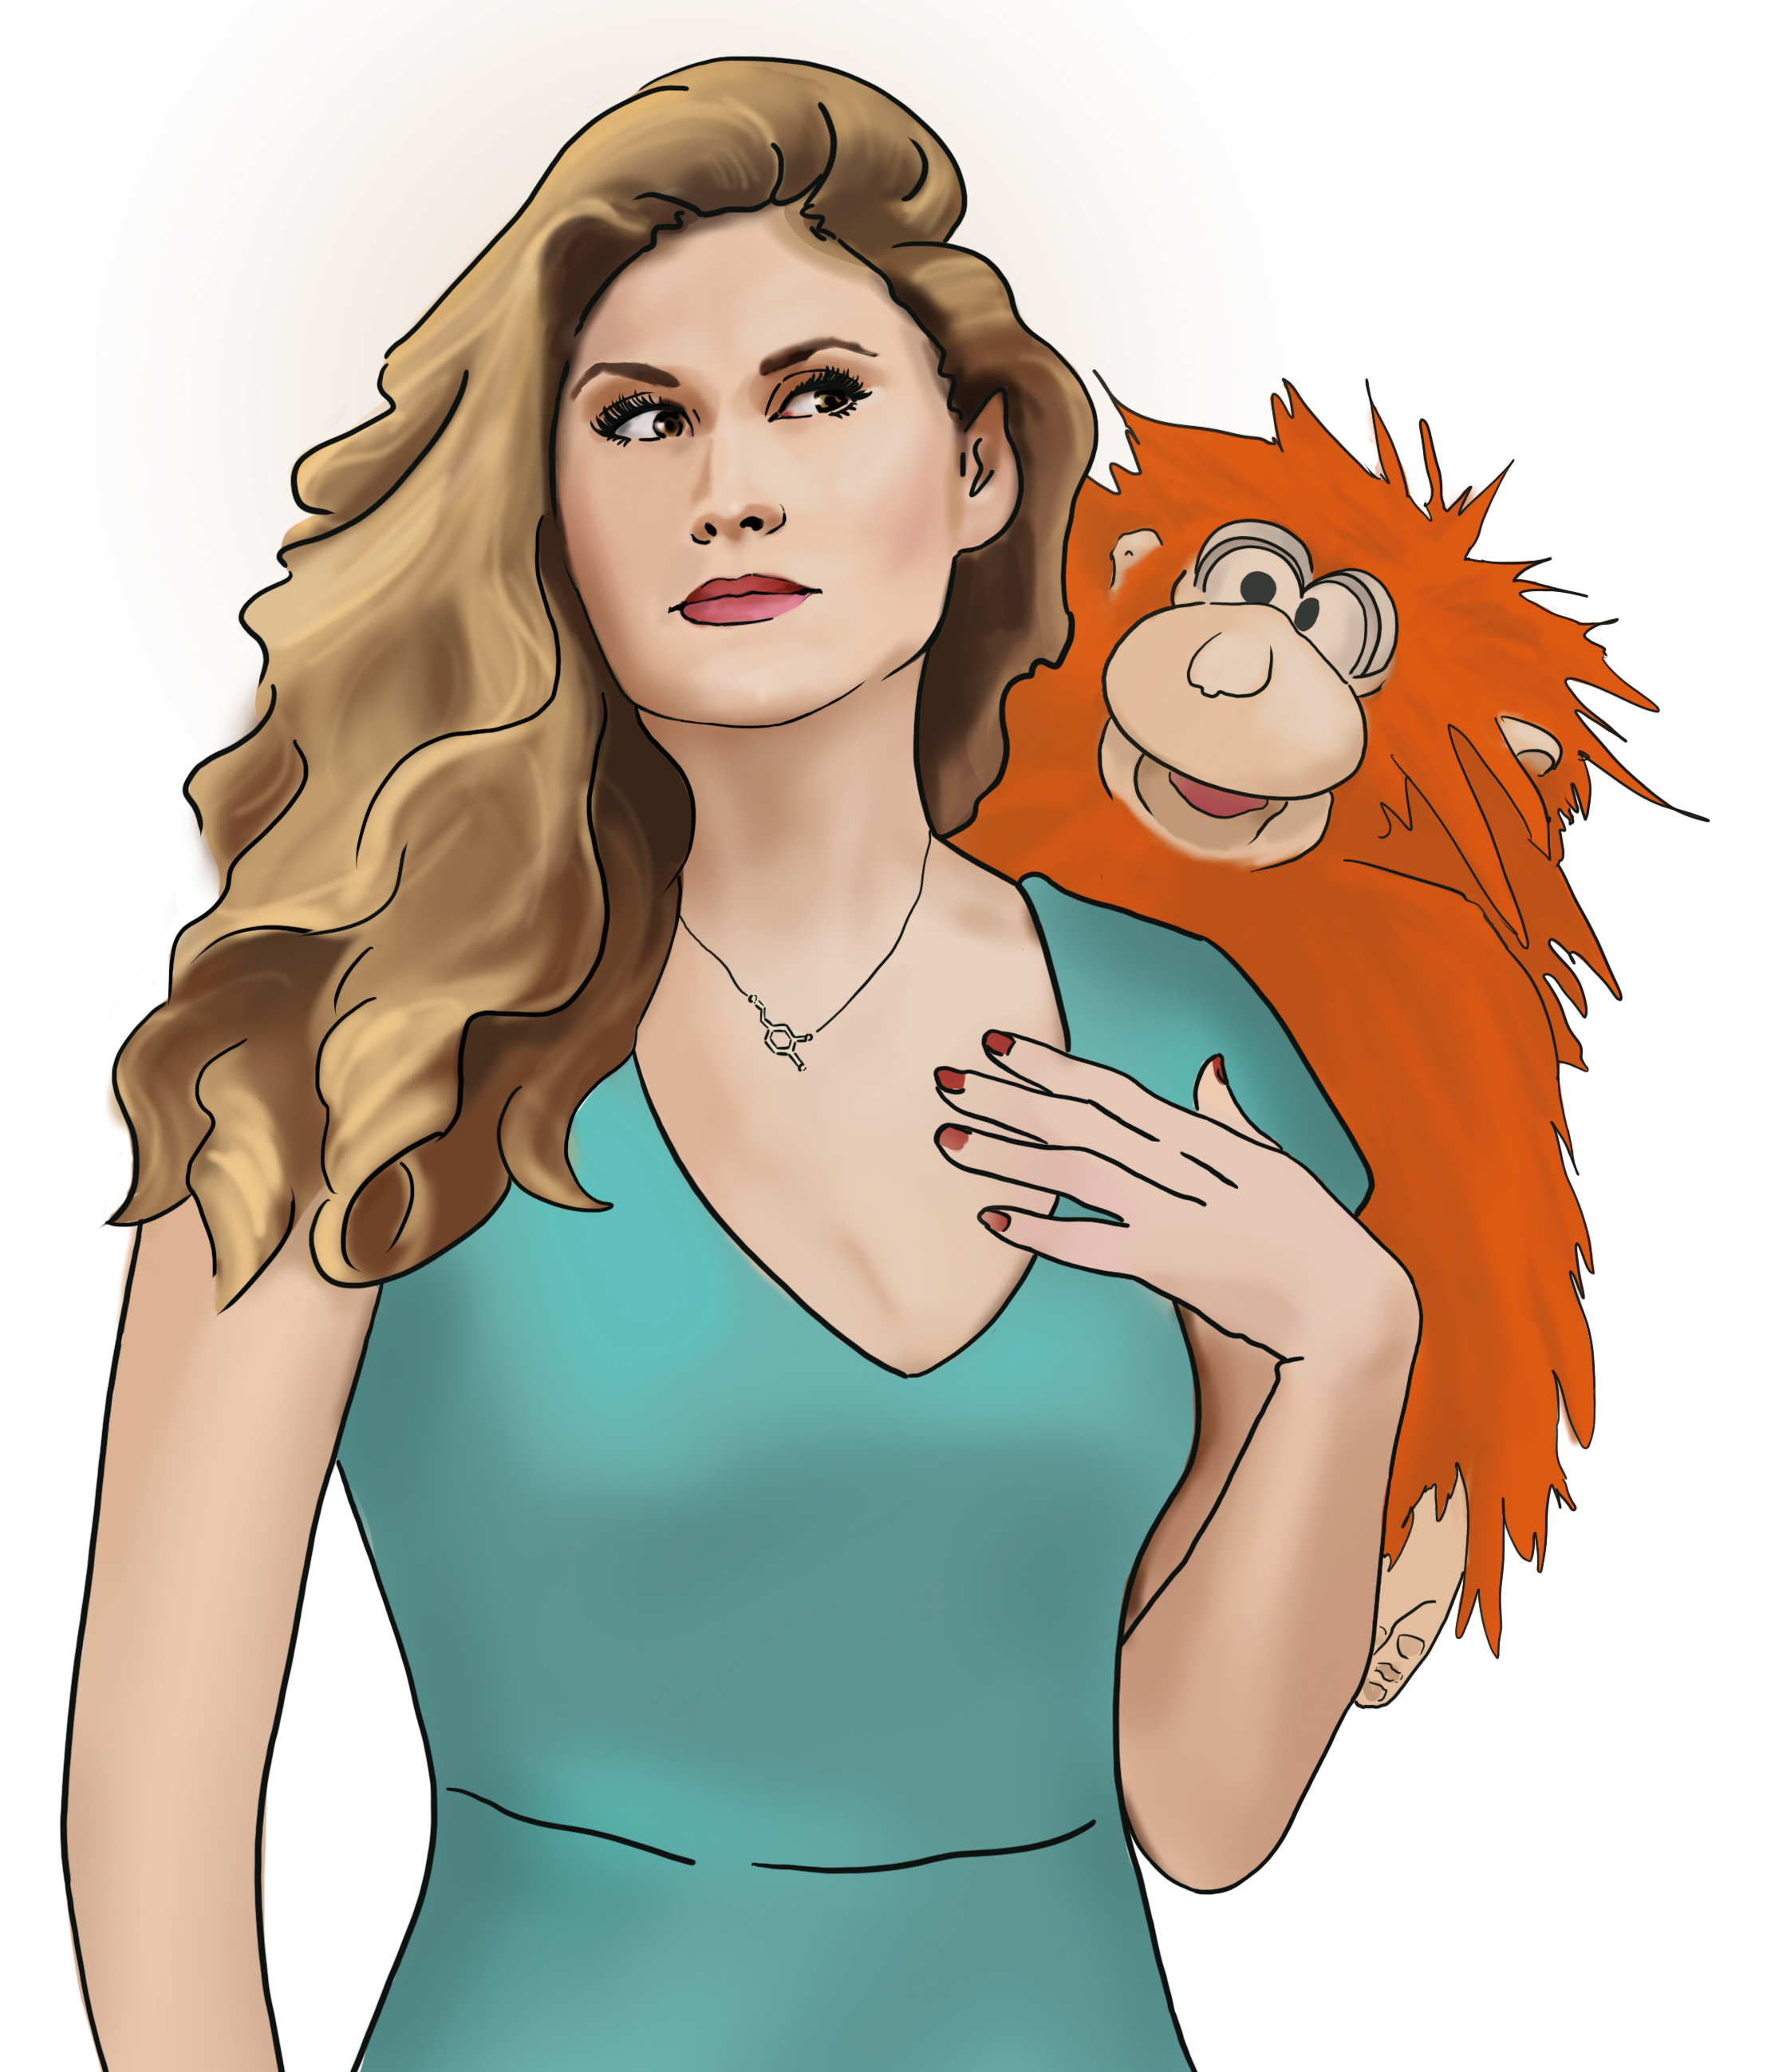 Drawing of a woman with an orangutan puppet